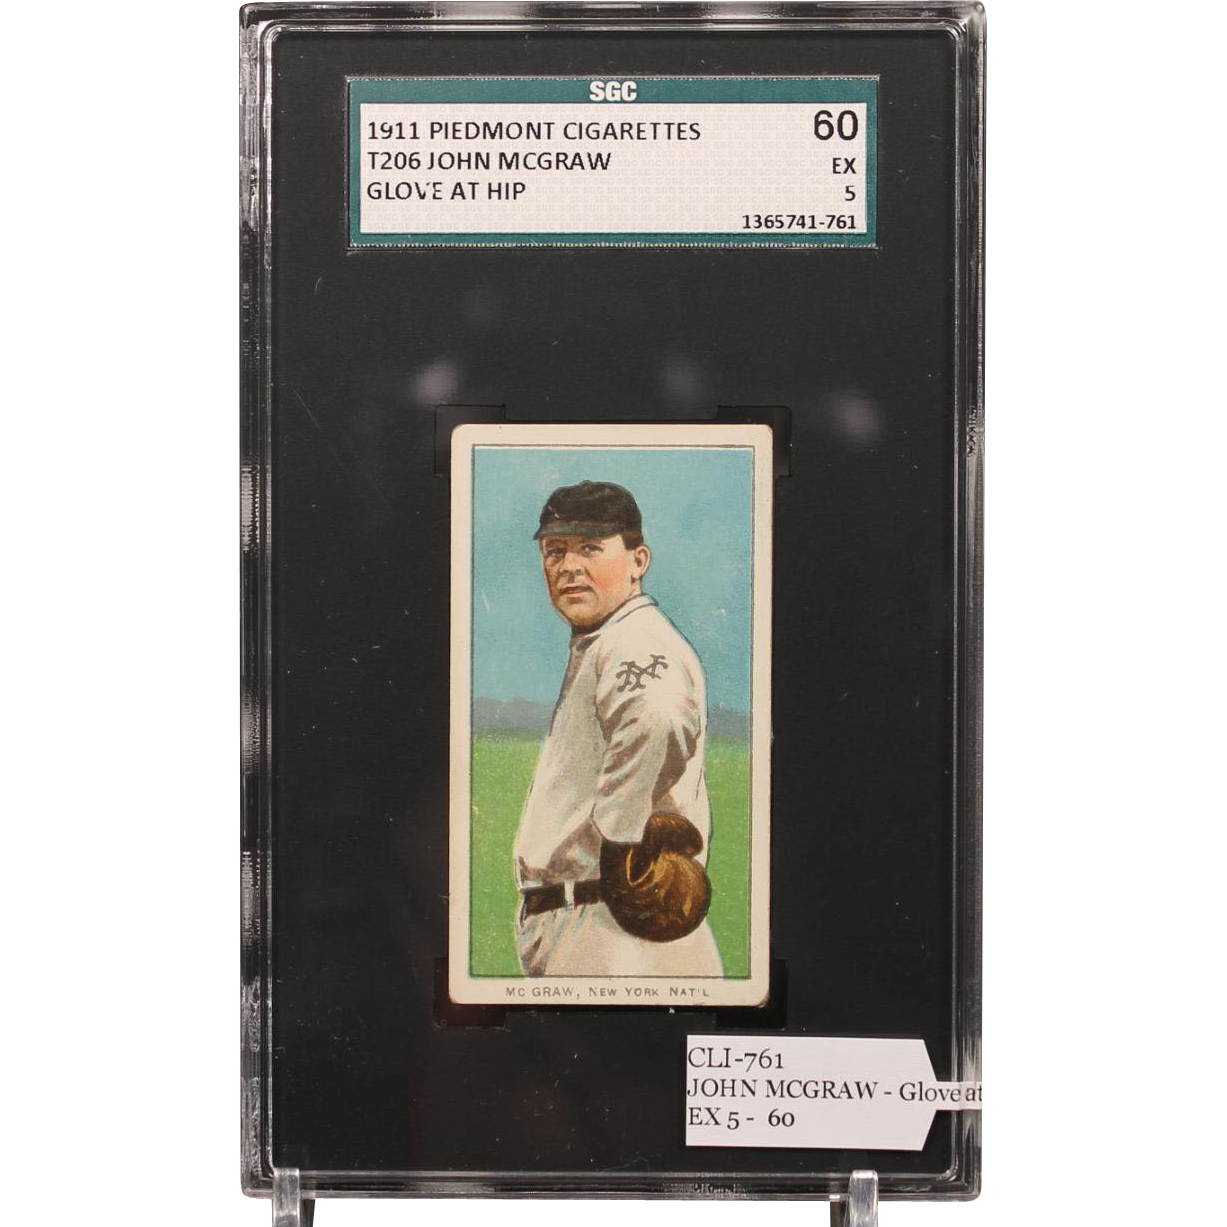 T206 JOHN MCGRAW - Glove at Hip SGC grade 60 EX 5